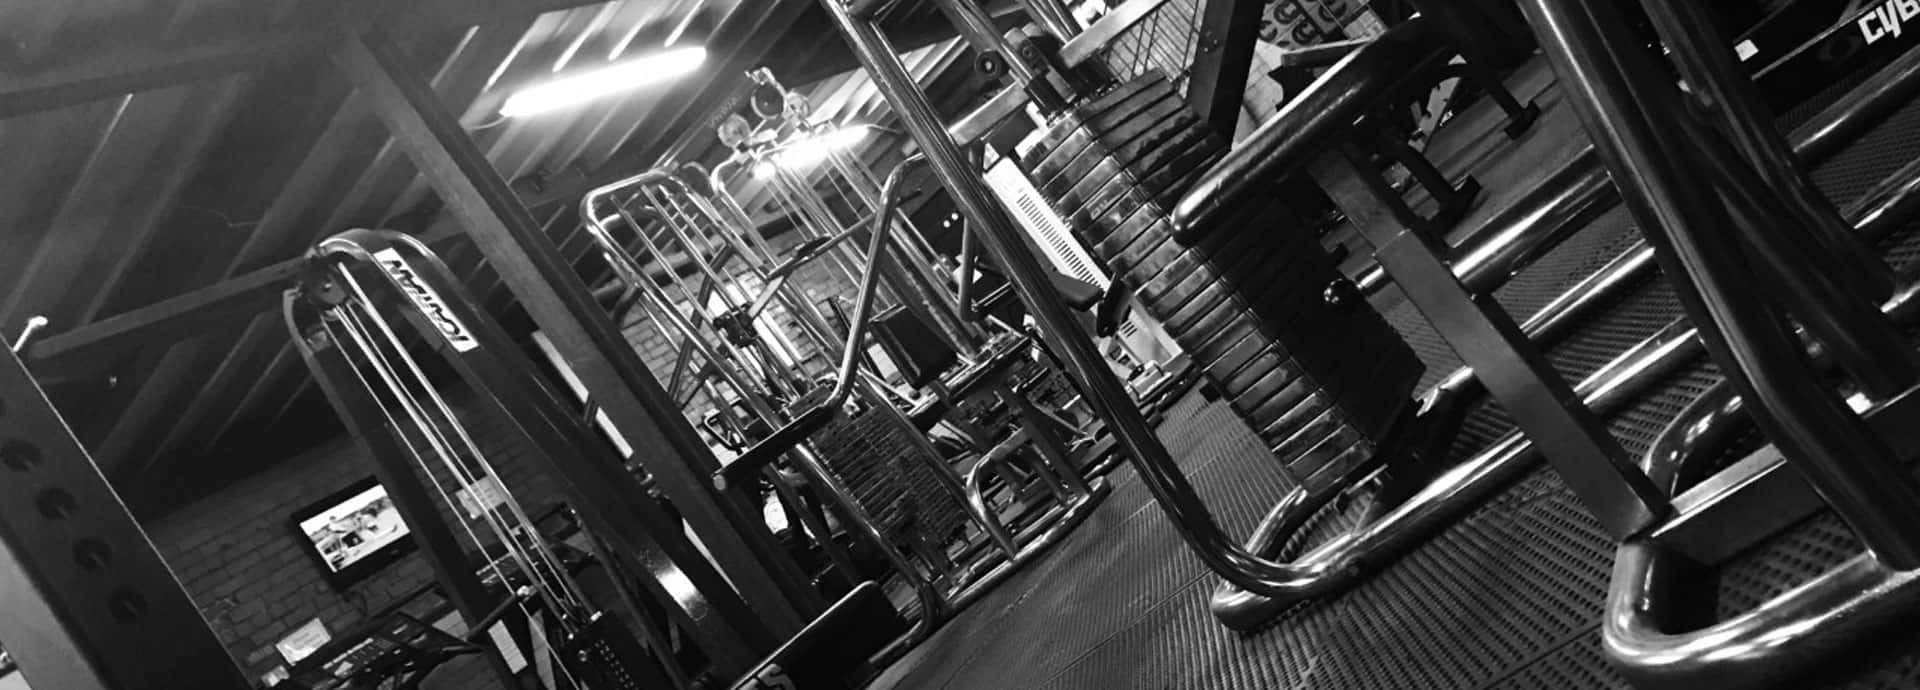 temple fitness gym